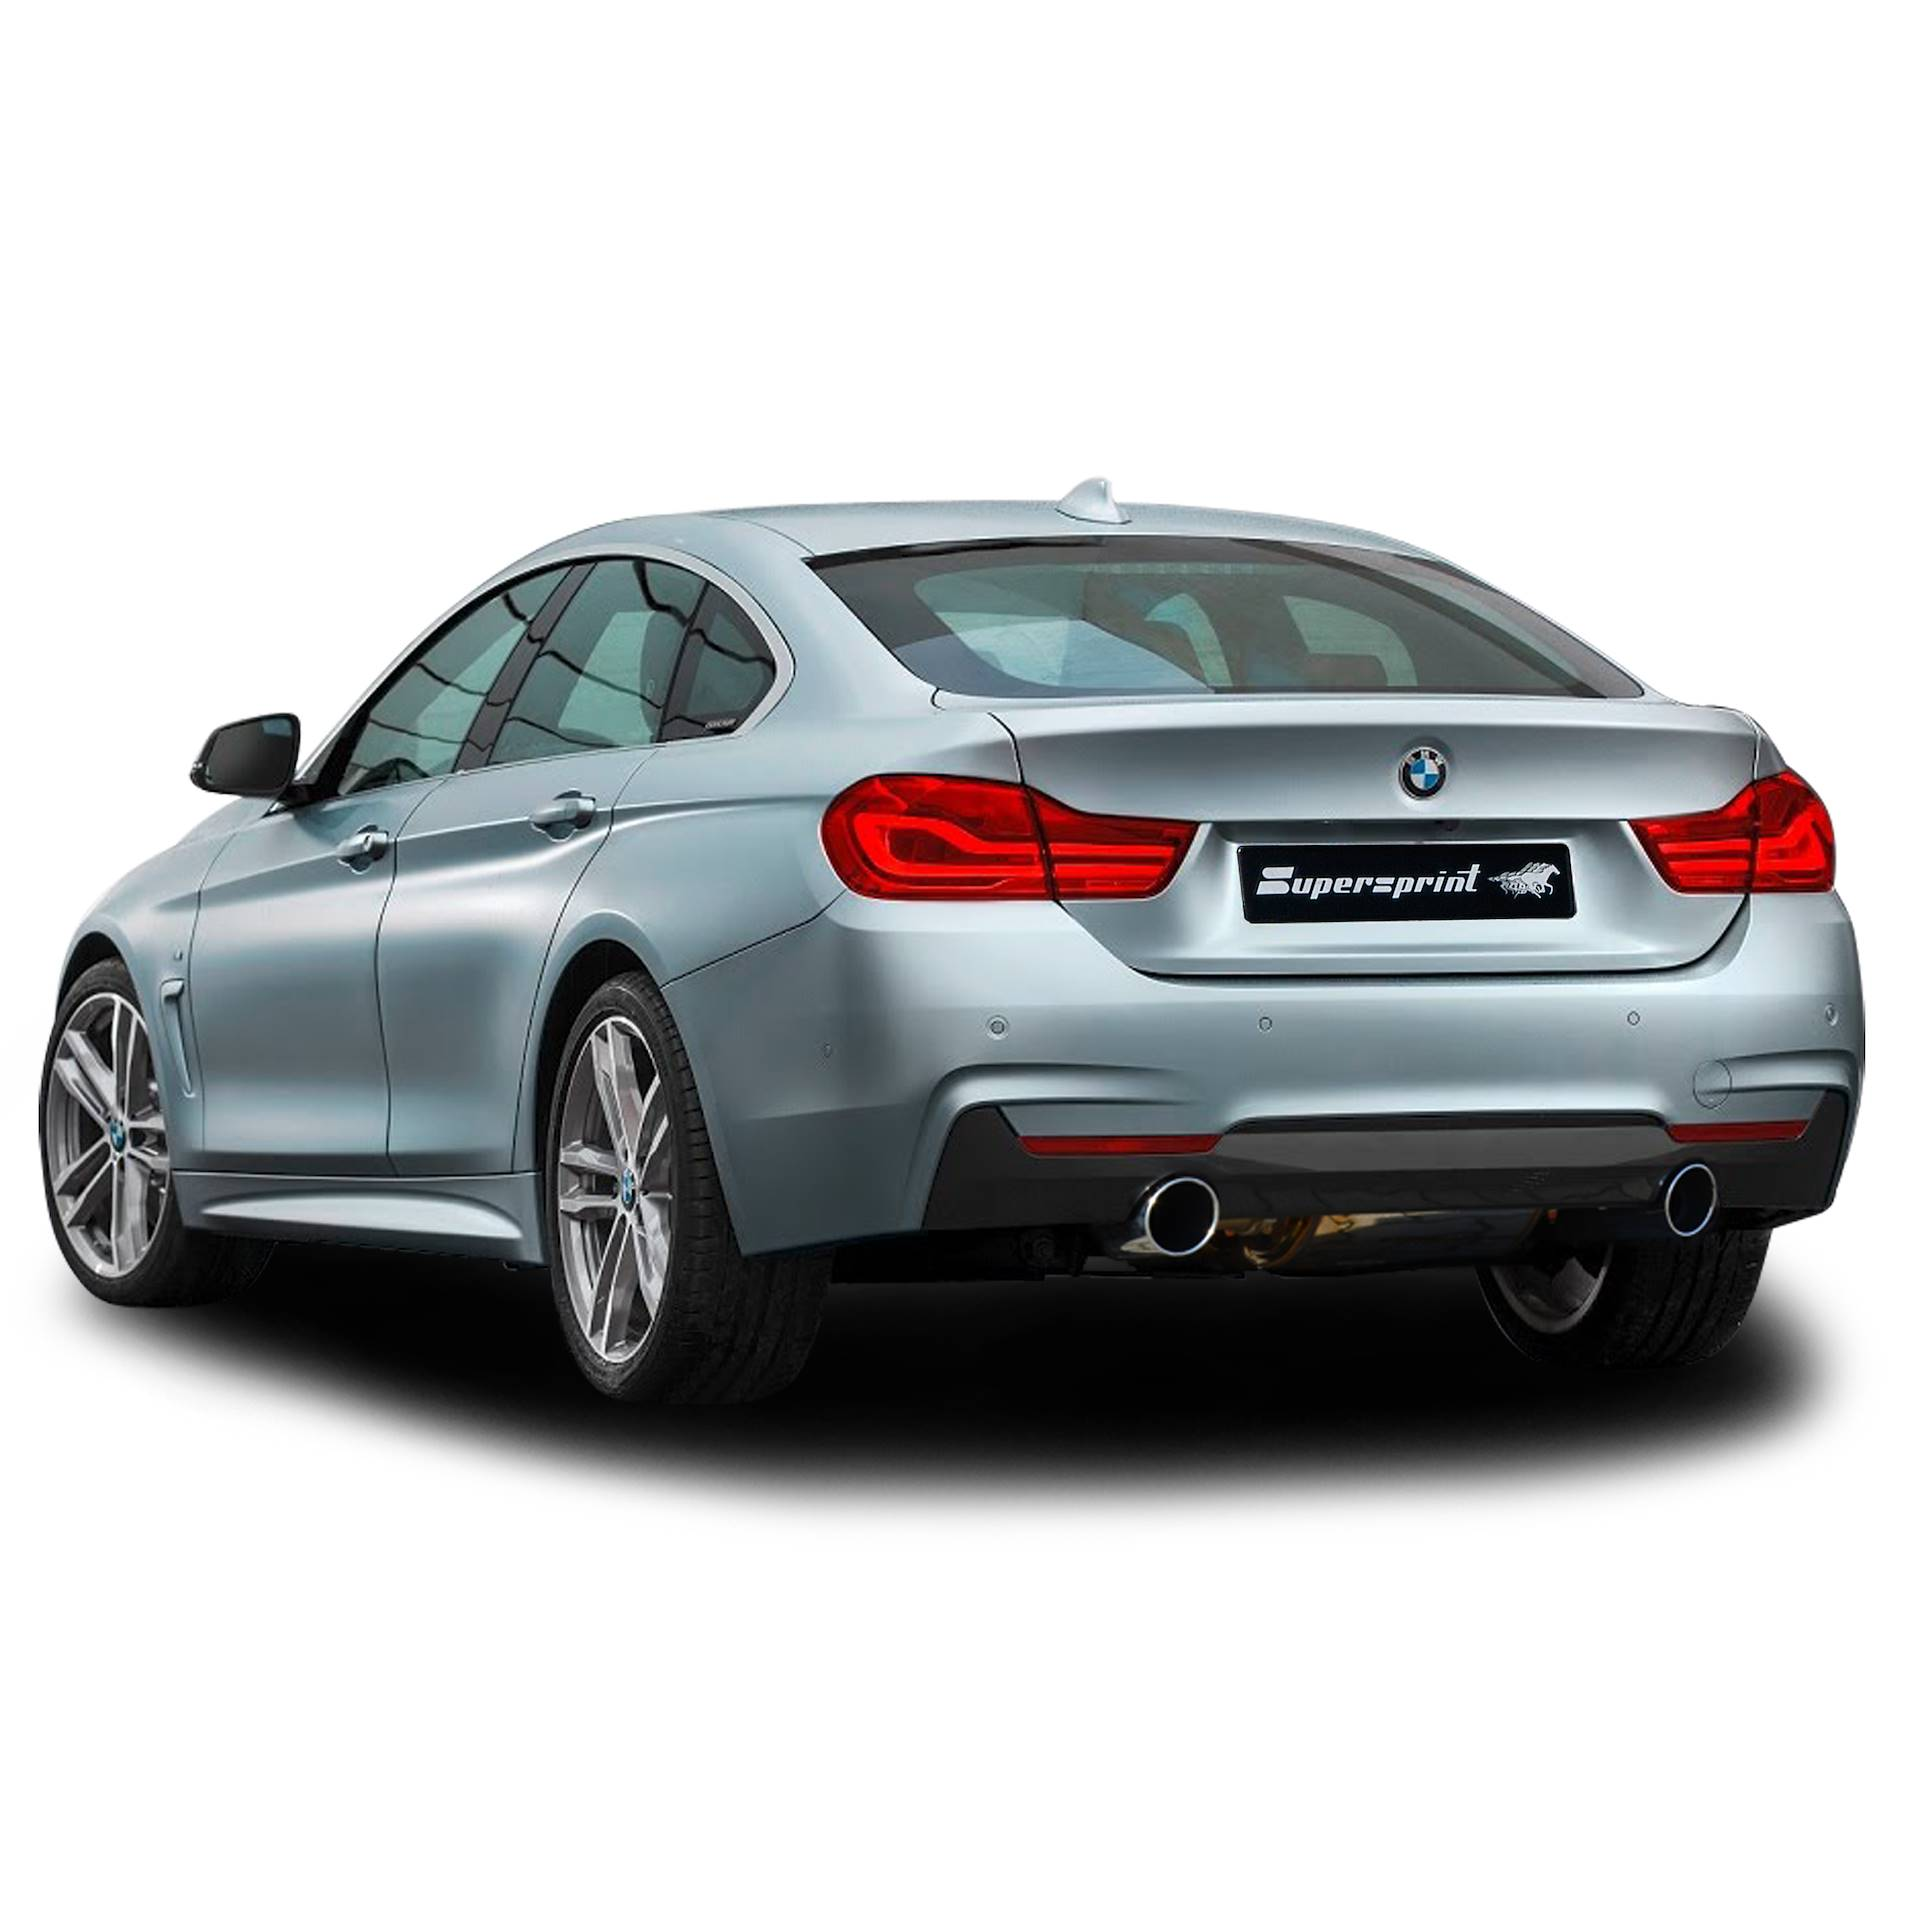 BMW - BMW F36 LCI Gran Coupè 440i xDrive (326 Hp) 2015 ->